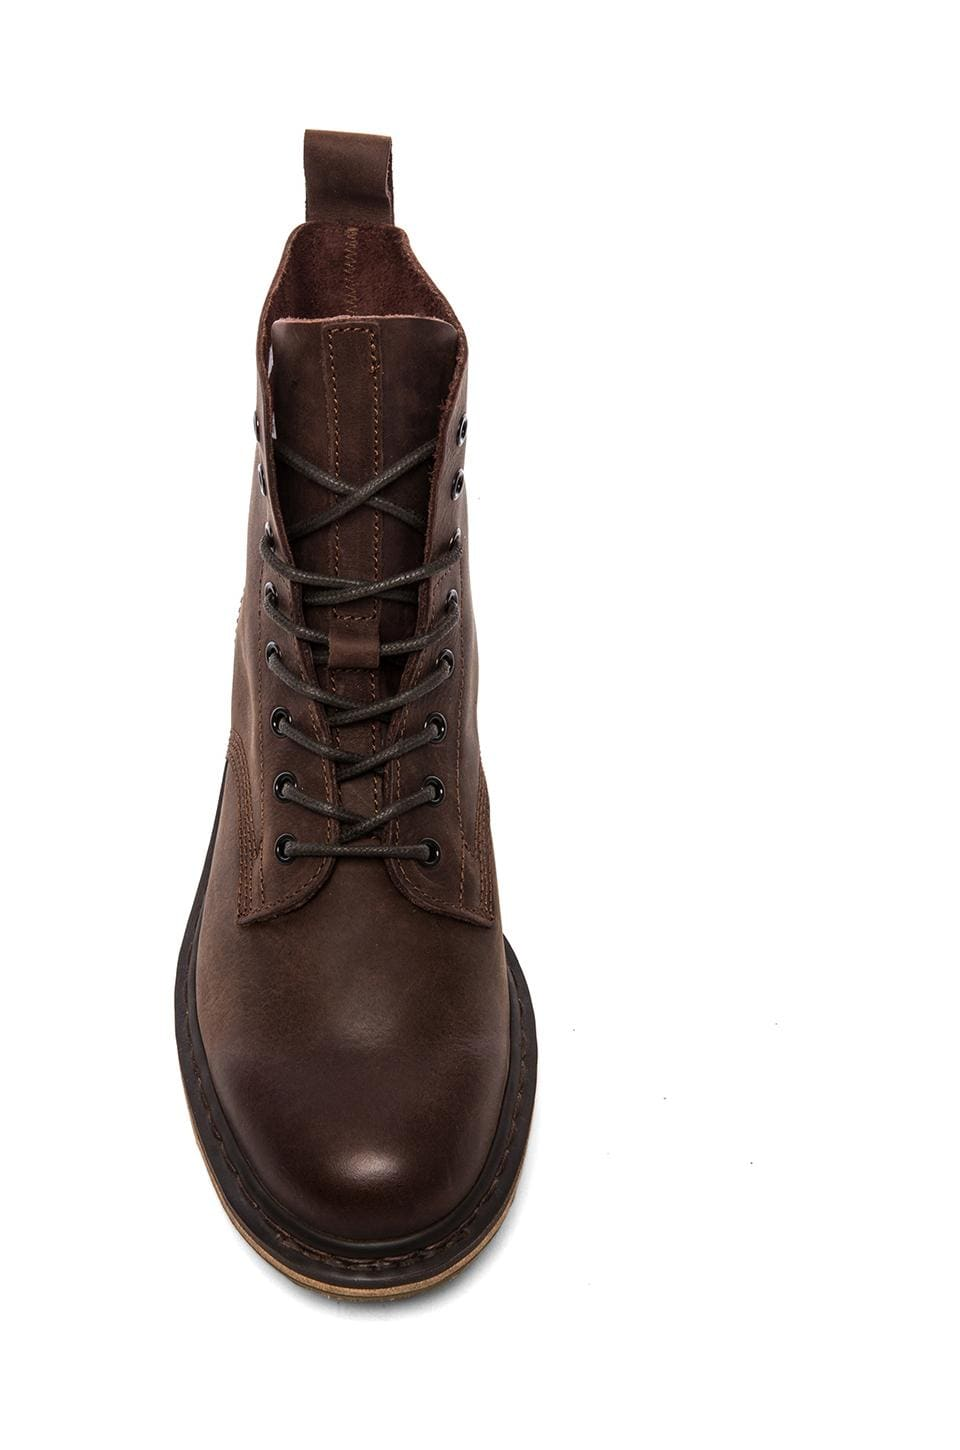 Dr. Martens Nero 8-Tie Boot in Brown